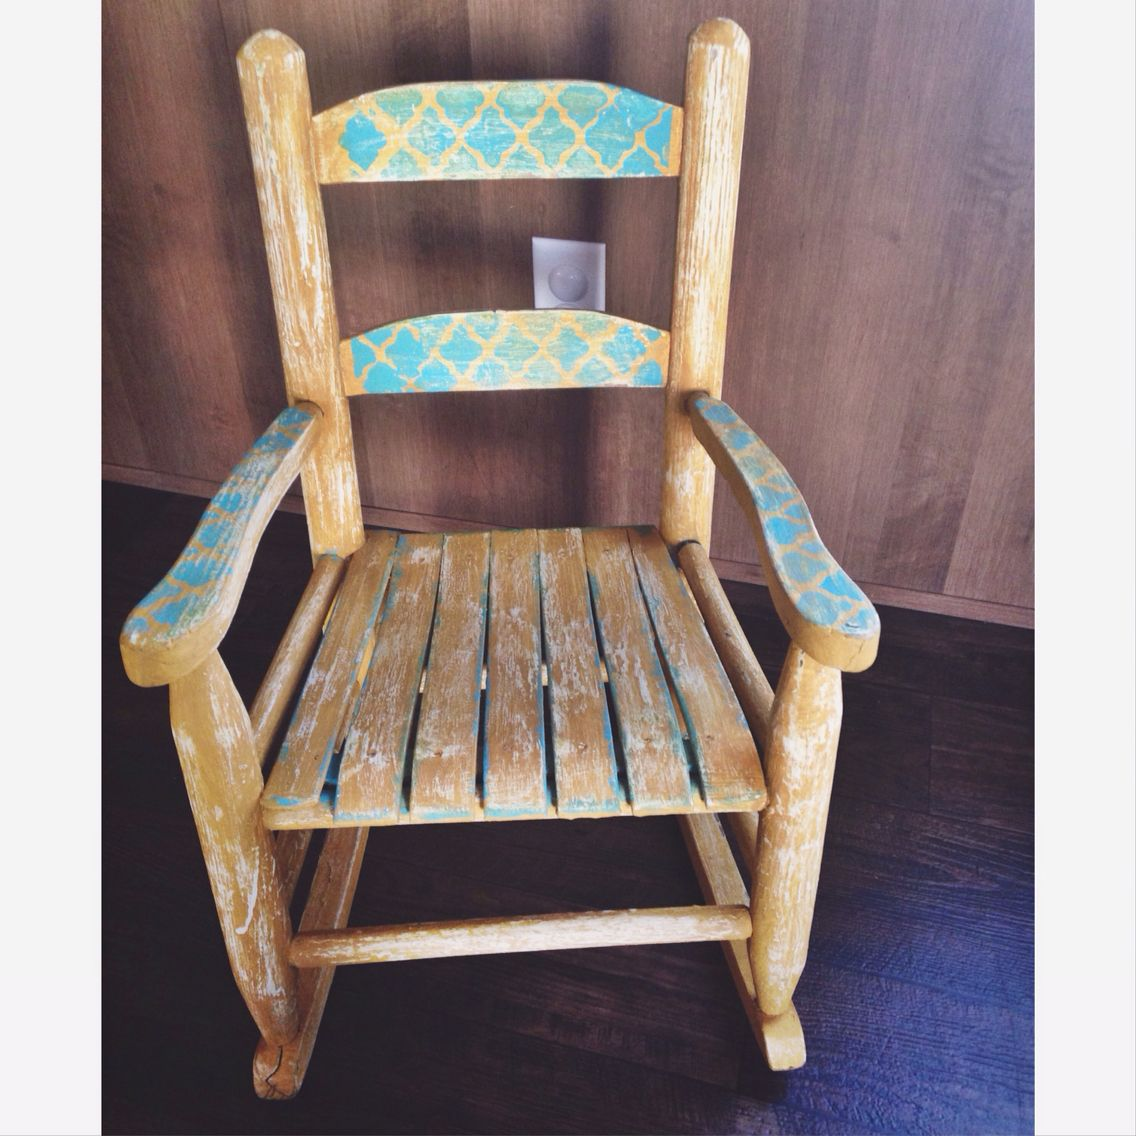 how to make rockers for a rocking chair